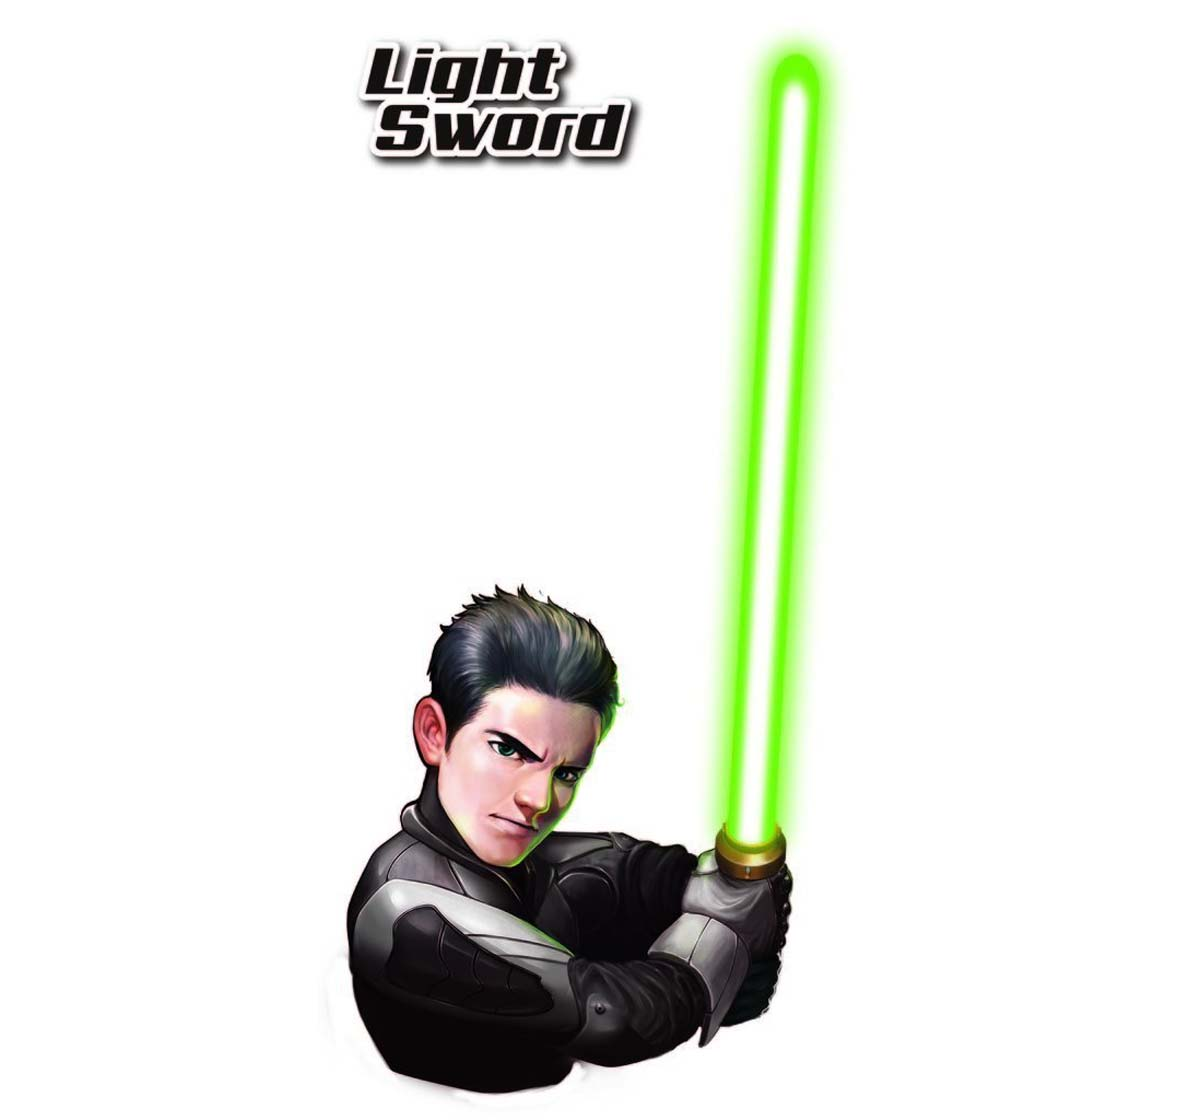 X-Shot | X-Shot Light Swords With Led Action Figure Play Sets for Kids age 8Y+